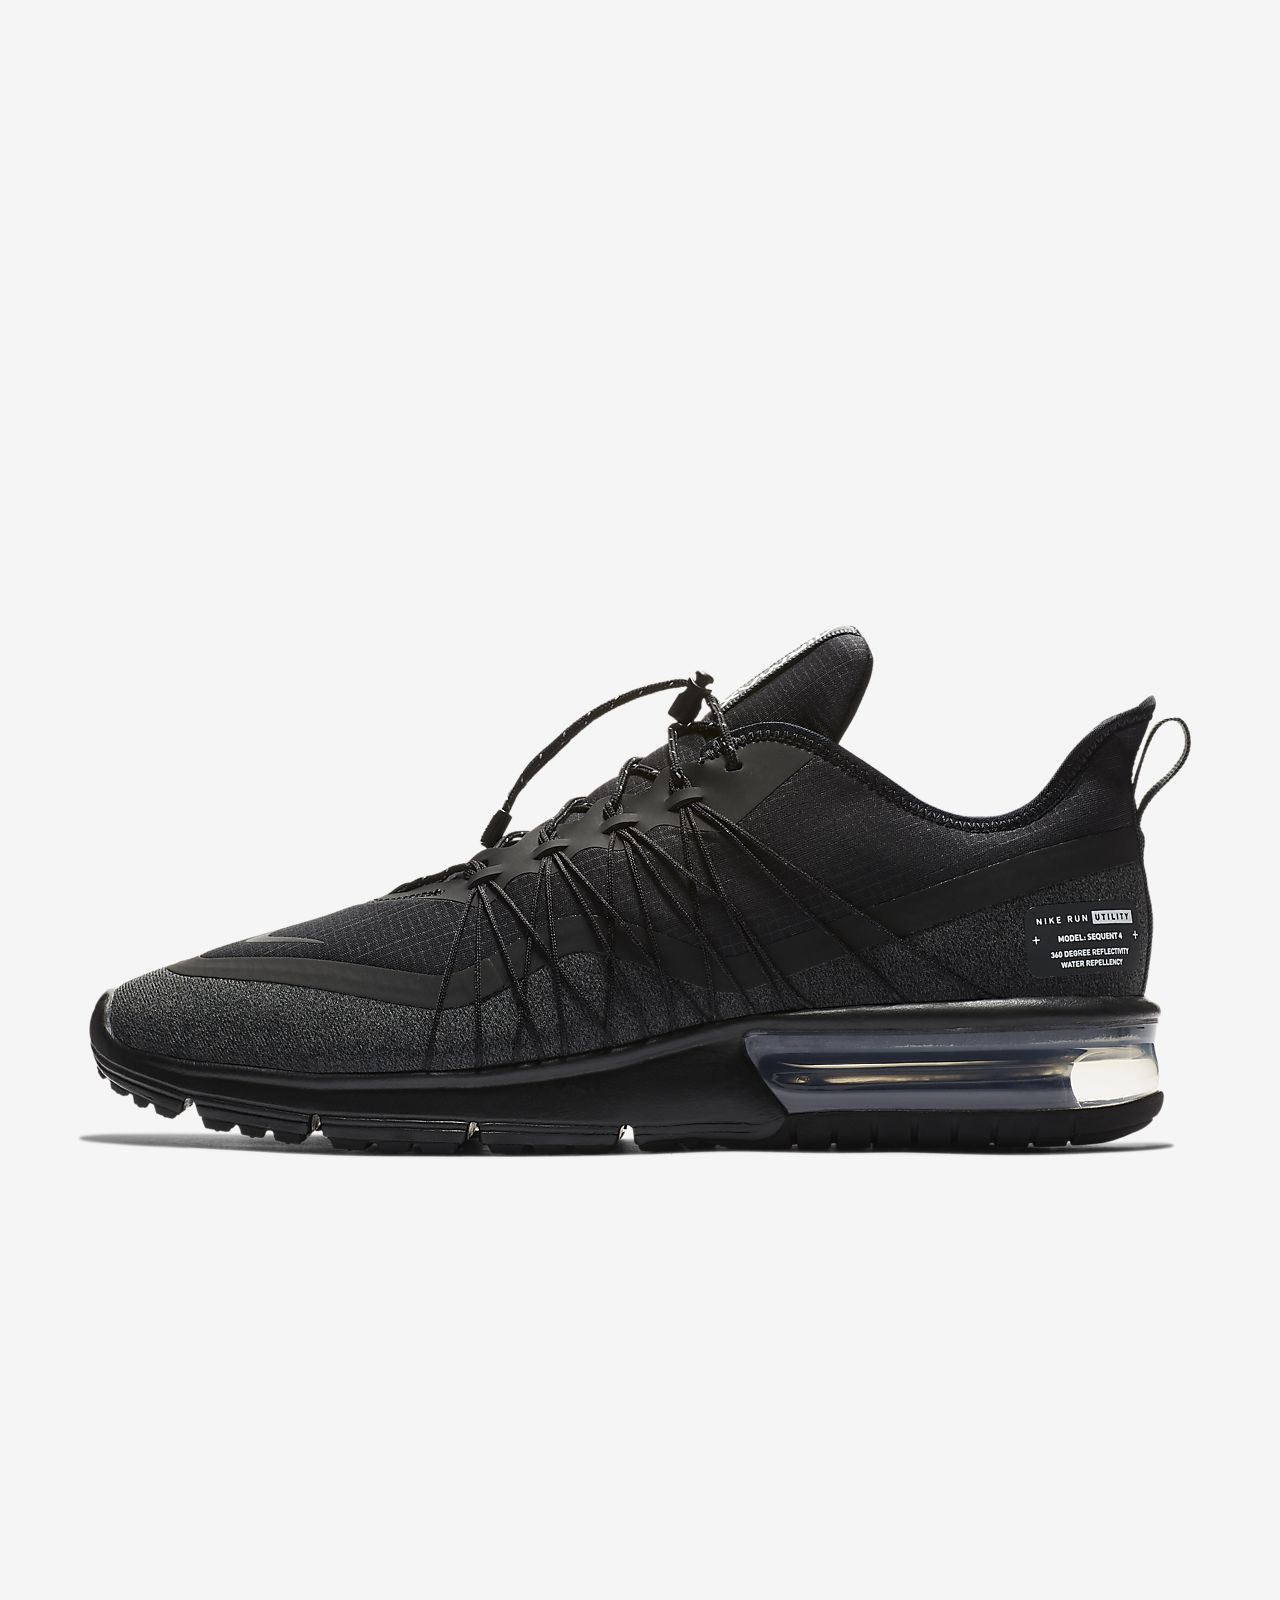 36d8c424d16 Nike Air Max Sequent 4 Shield Men s Shoe. Nike.com RO